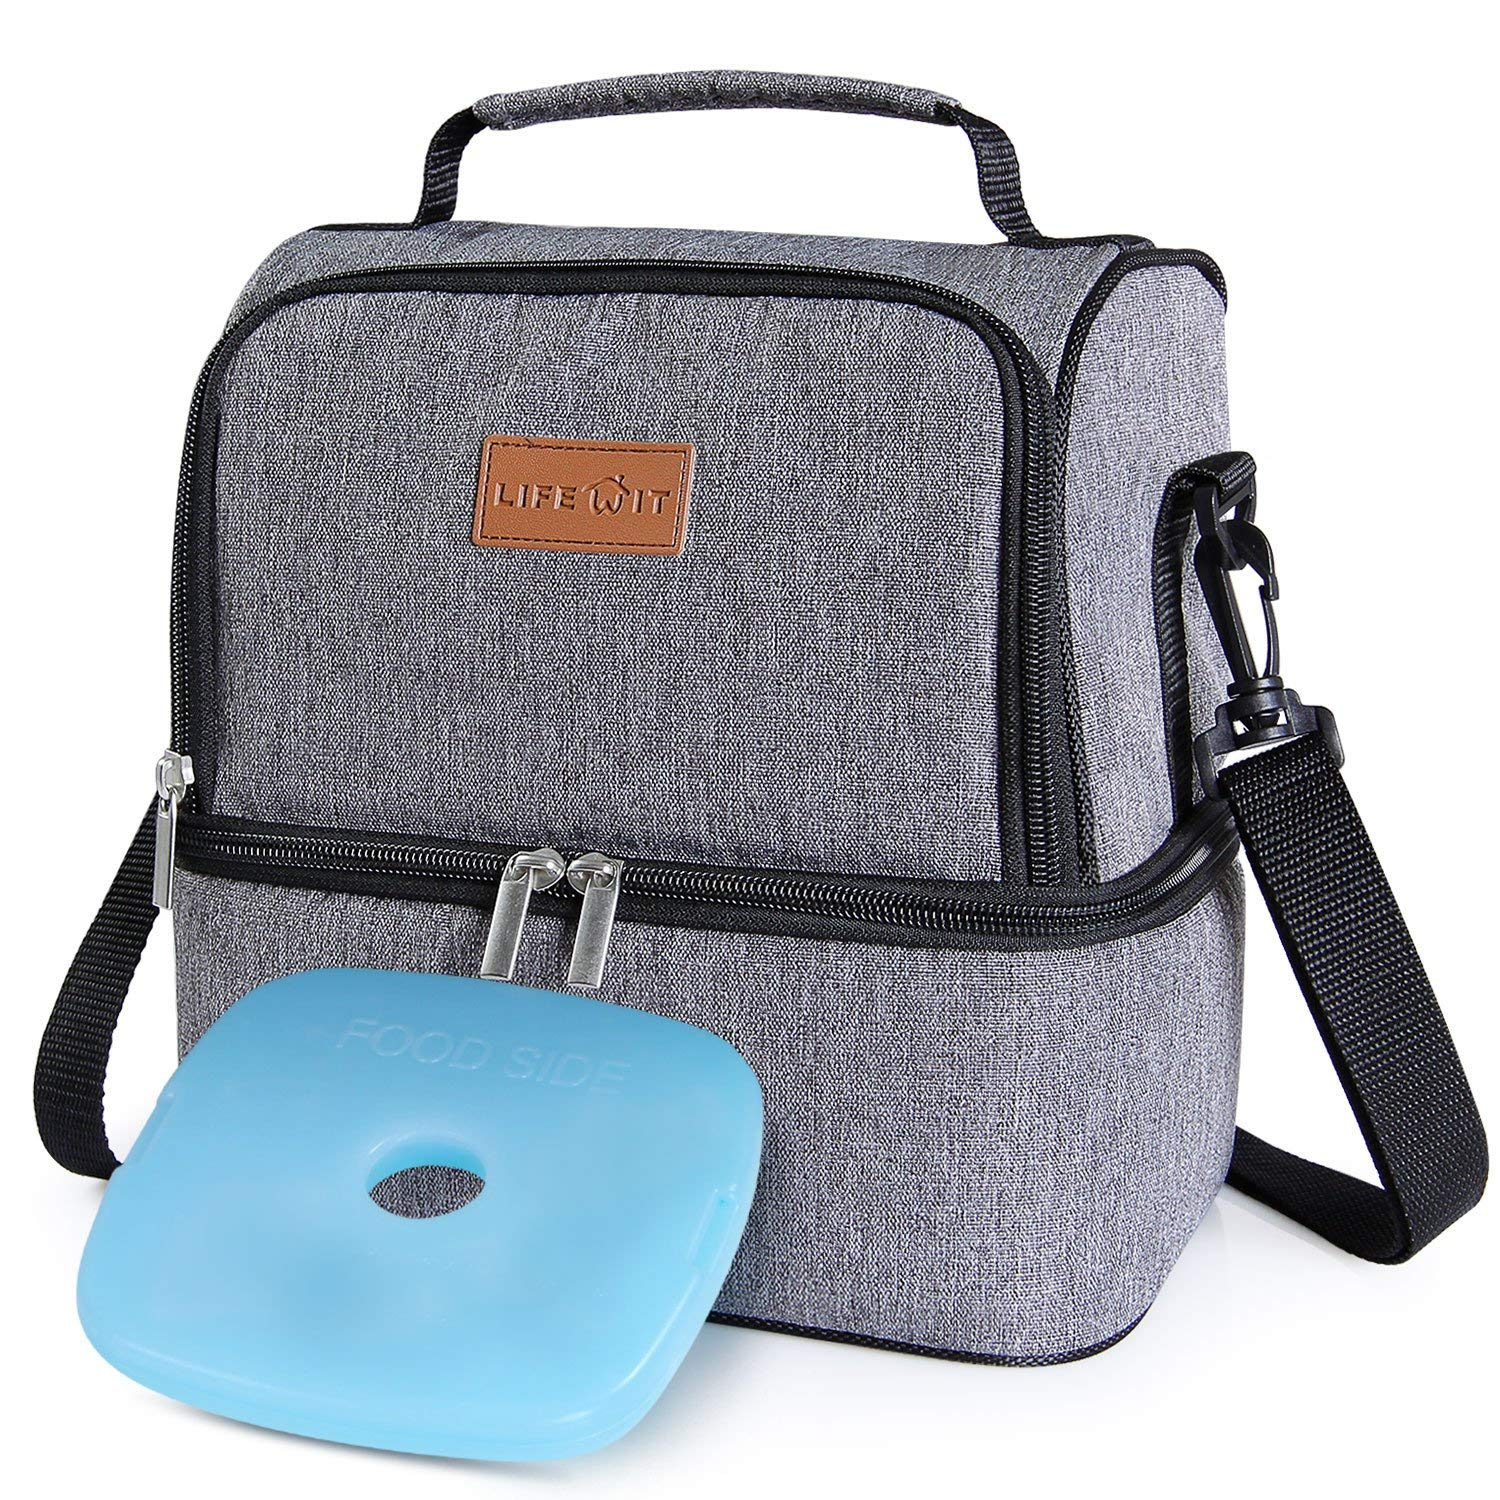 Lifewit Lunch Bags Insulated Lunch Box Thermal Bento Bag 7L